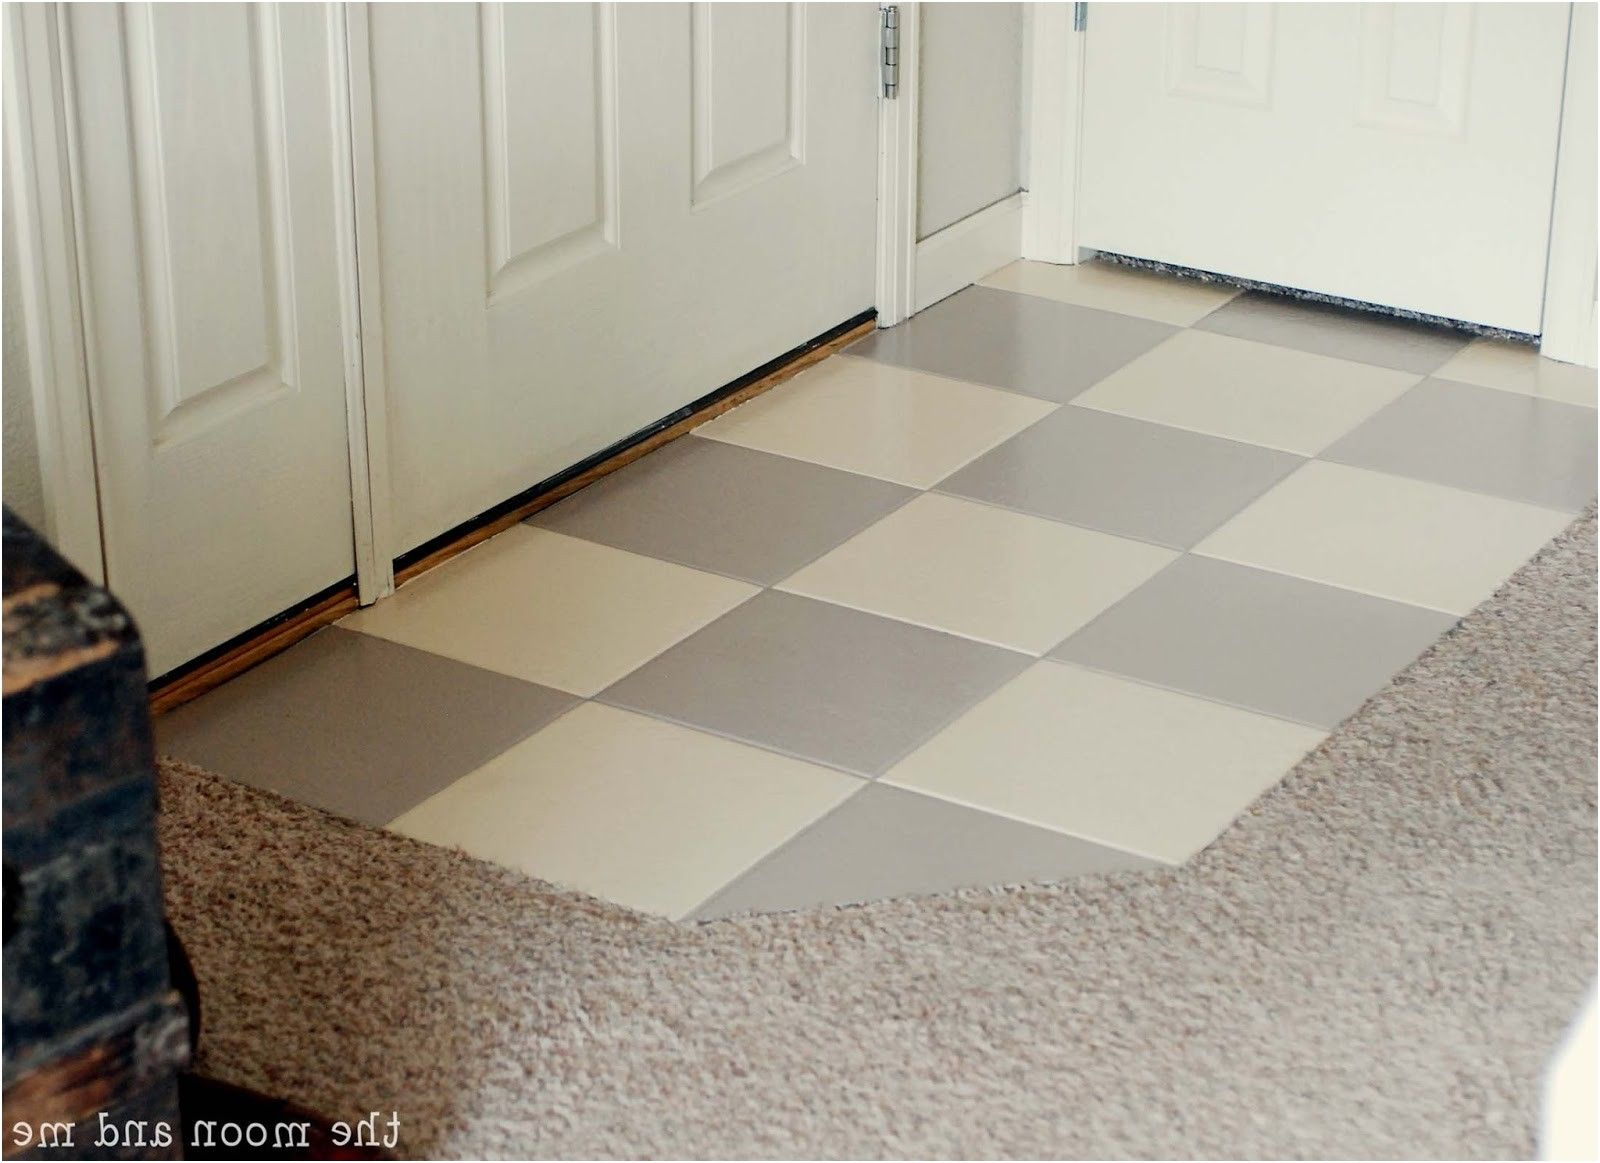 Awesome lovely can you paint bathroom floor tile mifd283 awesome lovely can you paint bathroom floor tile dailygadgetfo Images